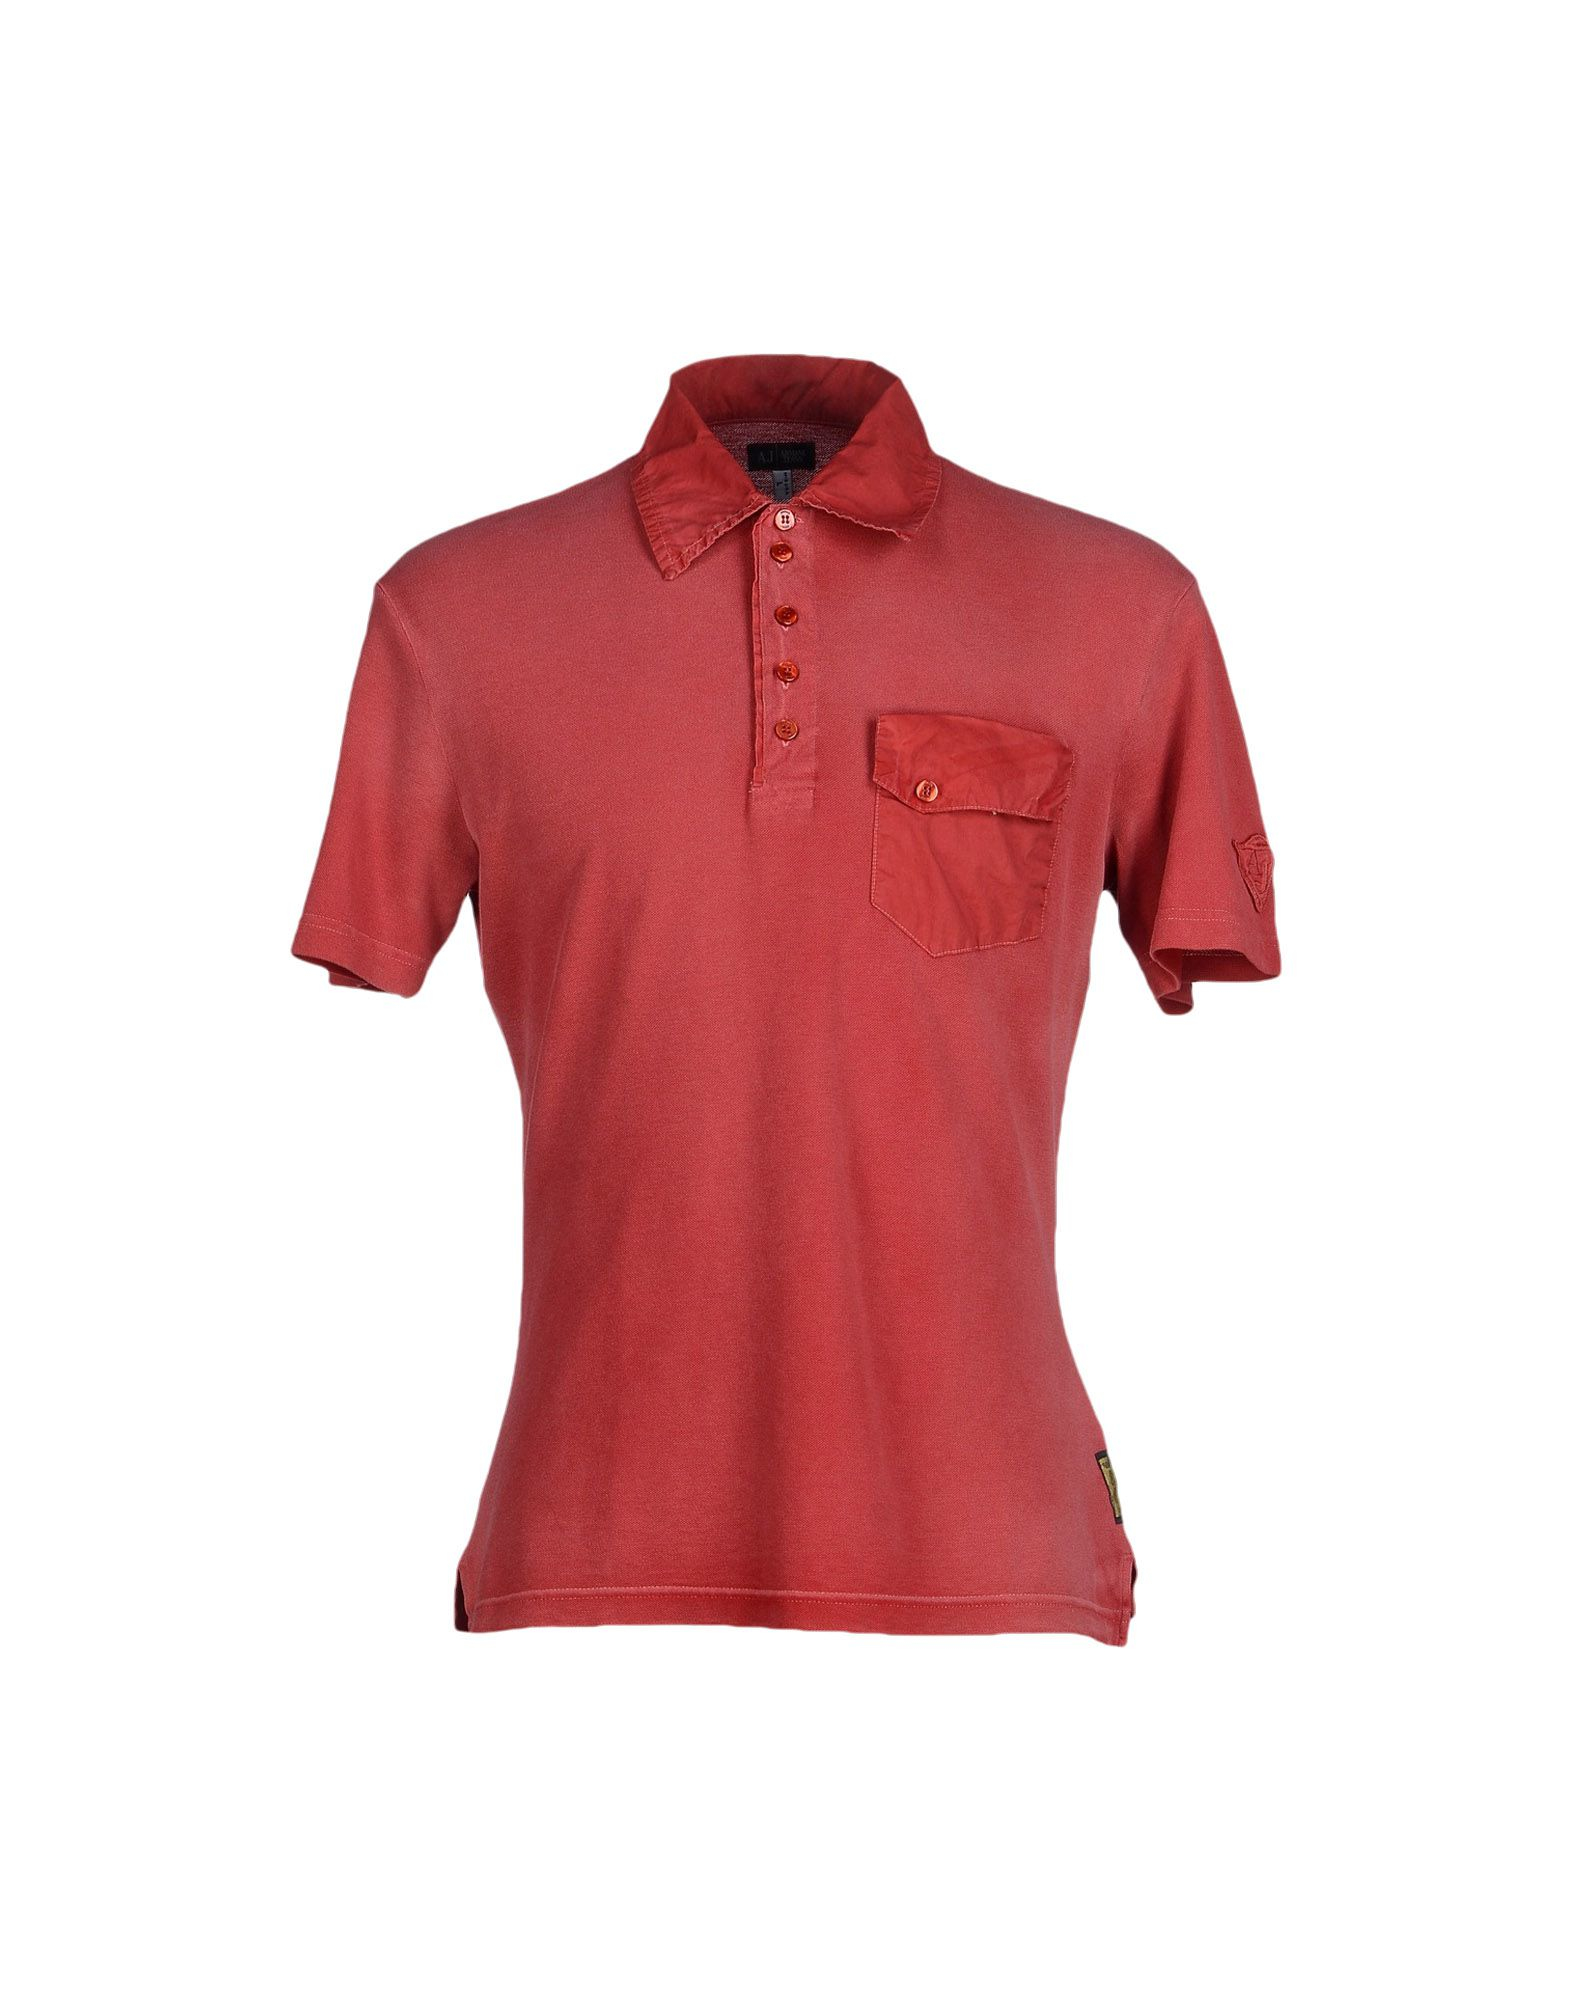 Armani jeans polo shirt in red for men lyst for Lands end logo shirts